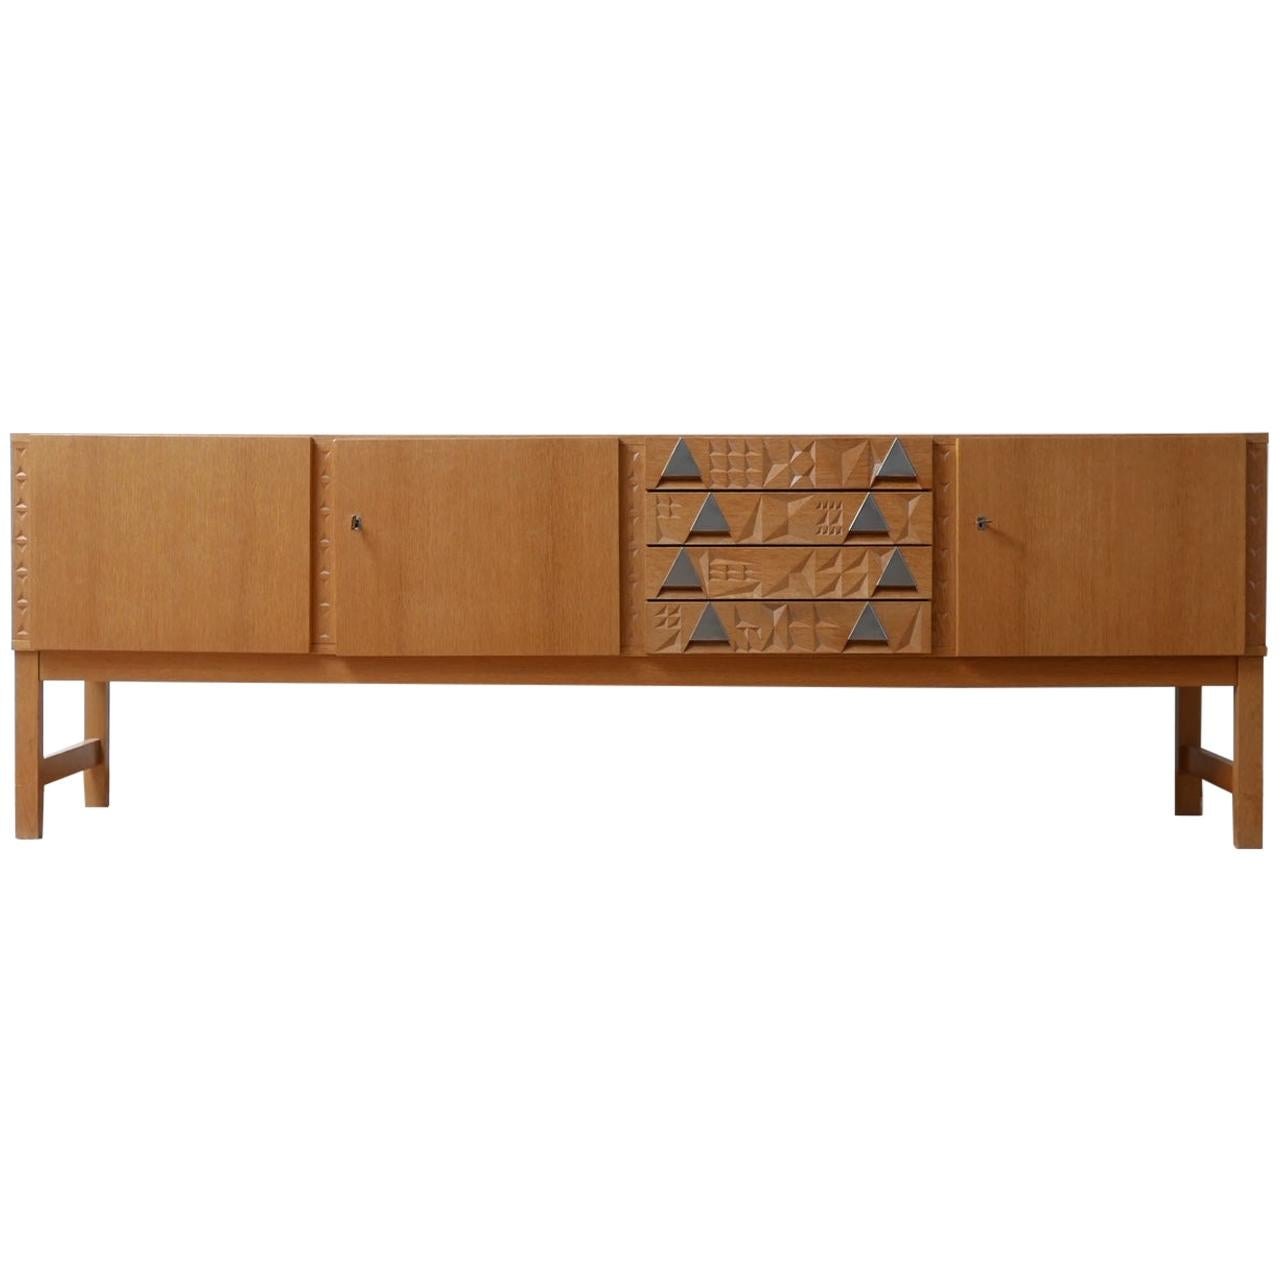 Blonde French Midcentury Credenza/Sideboard